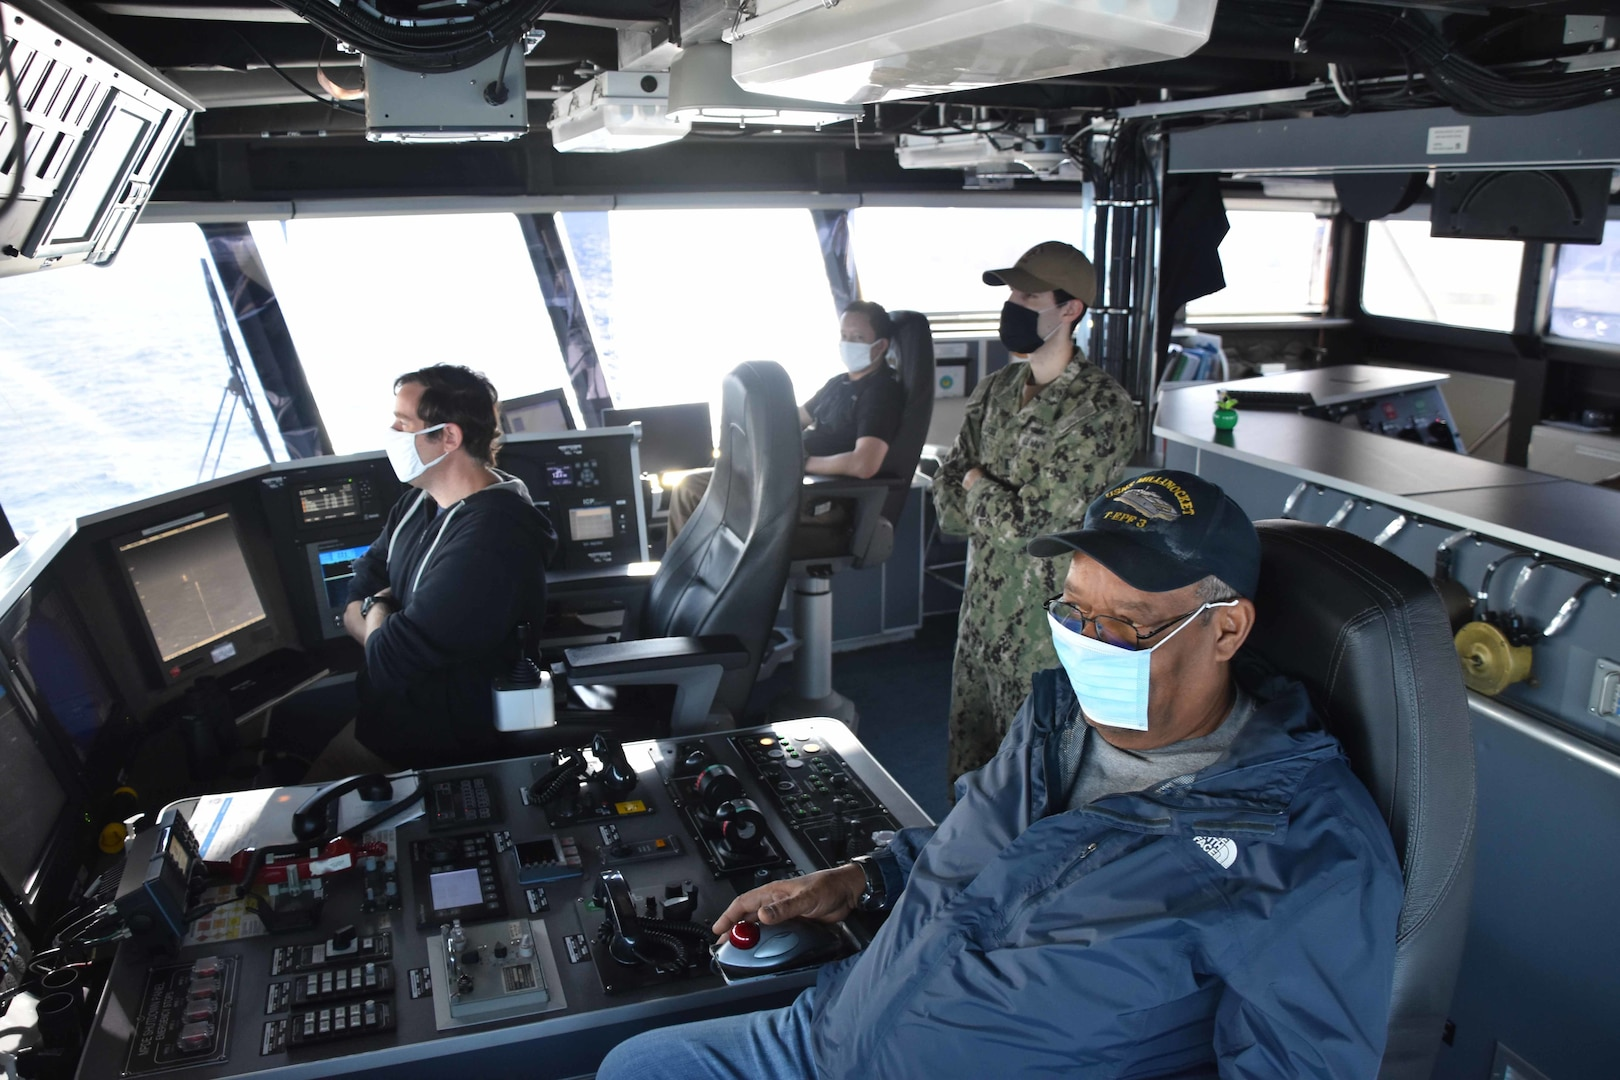 Crew members aboard USNS Millinocket (T-EPF 3) navigate the ship from the bridge as ships from the Bangladesh Navy maneuver in formation during the sea phase of Cooperation Afloat Readiness and Training (CARAT) Bangladesh. This year marks the 26th iteration of CARAT, a multinational exercise designed to enhance U.S. and partner navies' abilities to operate together in response to traditional and non-traditional maritime security challenges in the Indo-Pacific region.